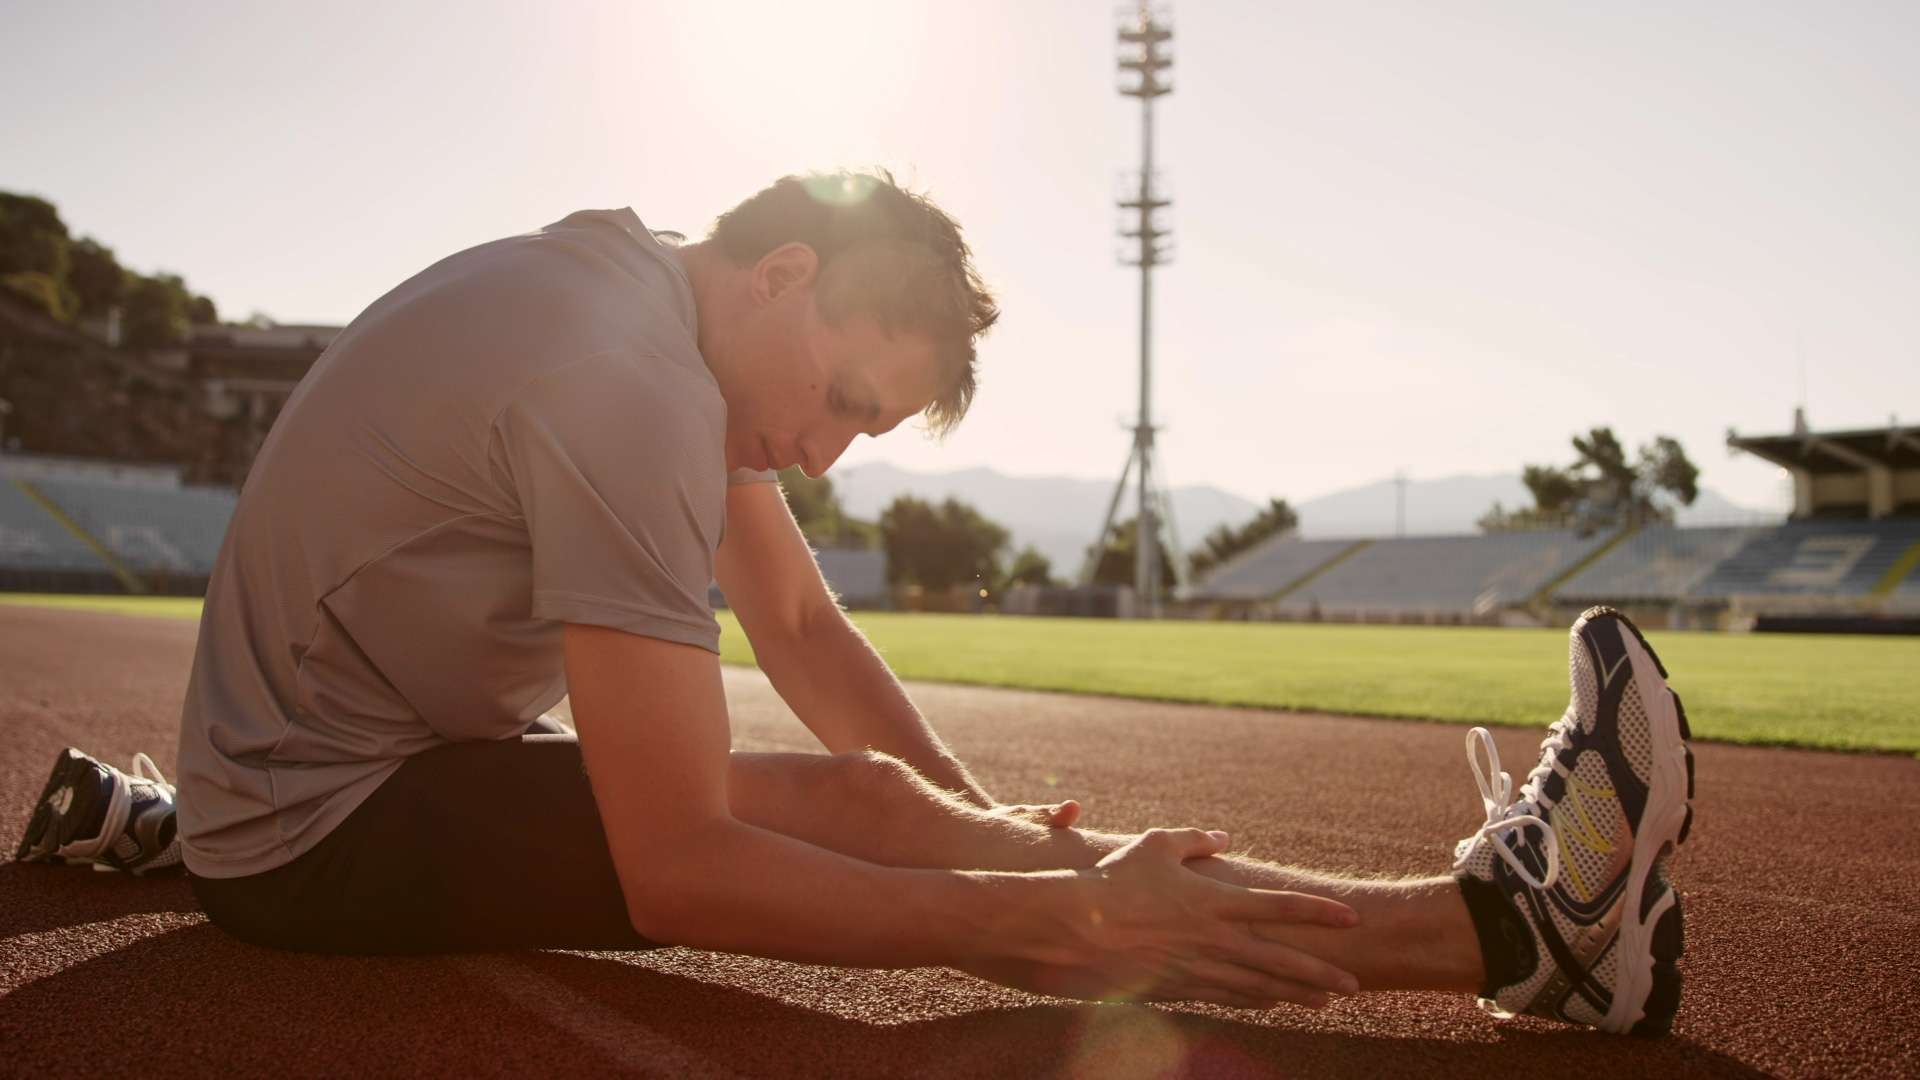 prodiet fluid - male runner stretching on a track